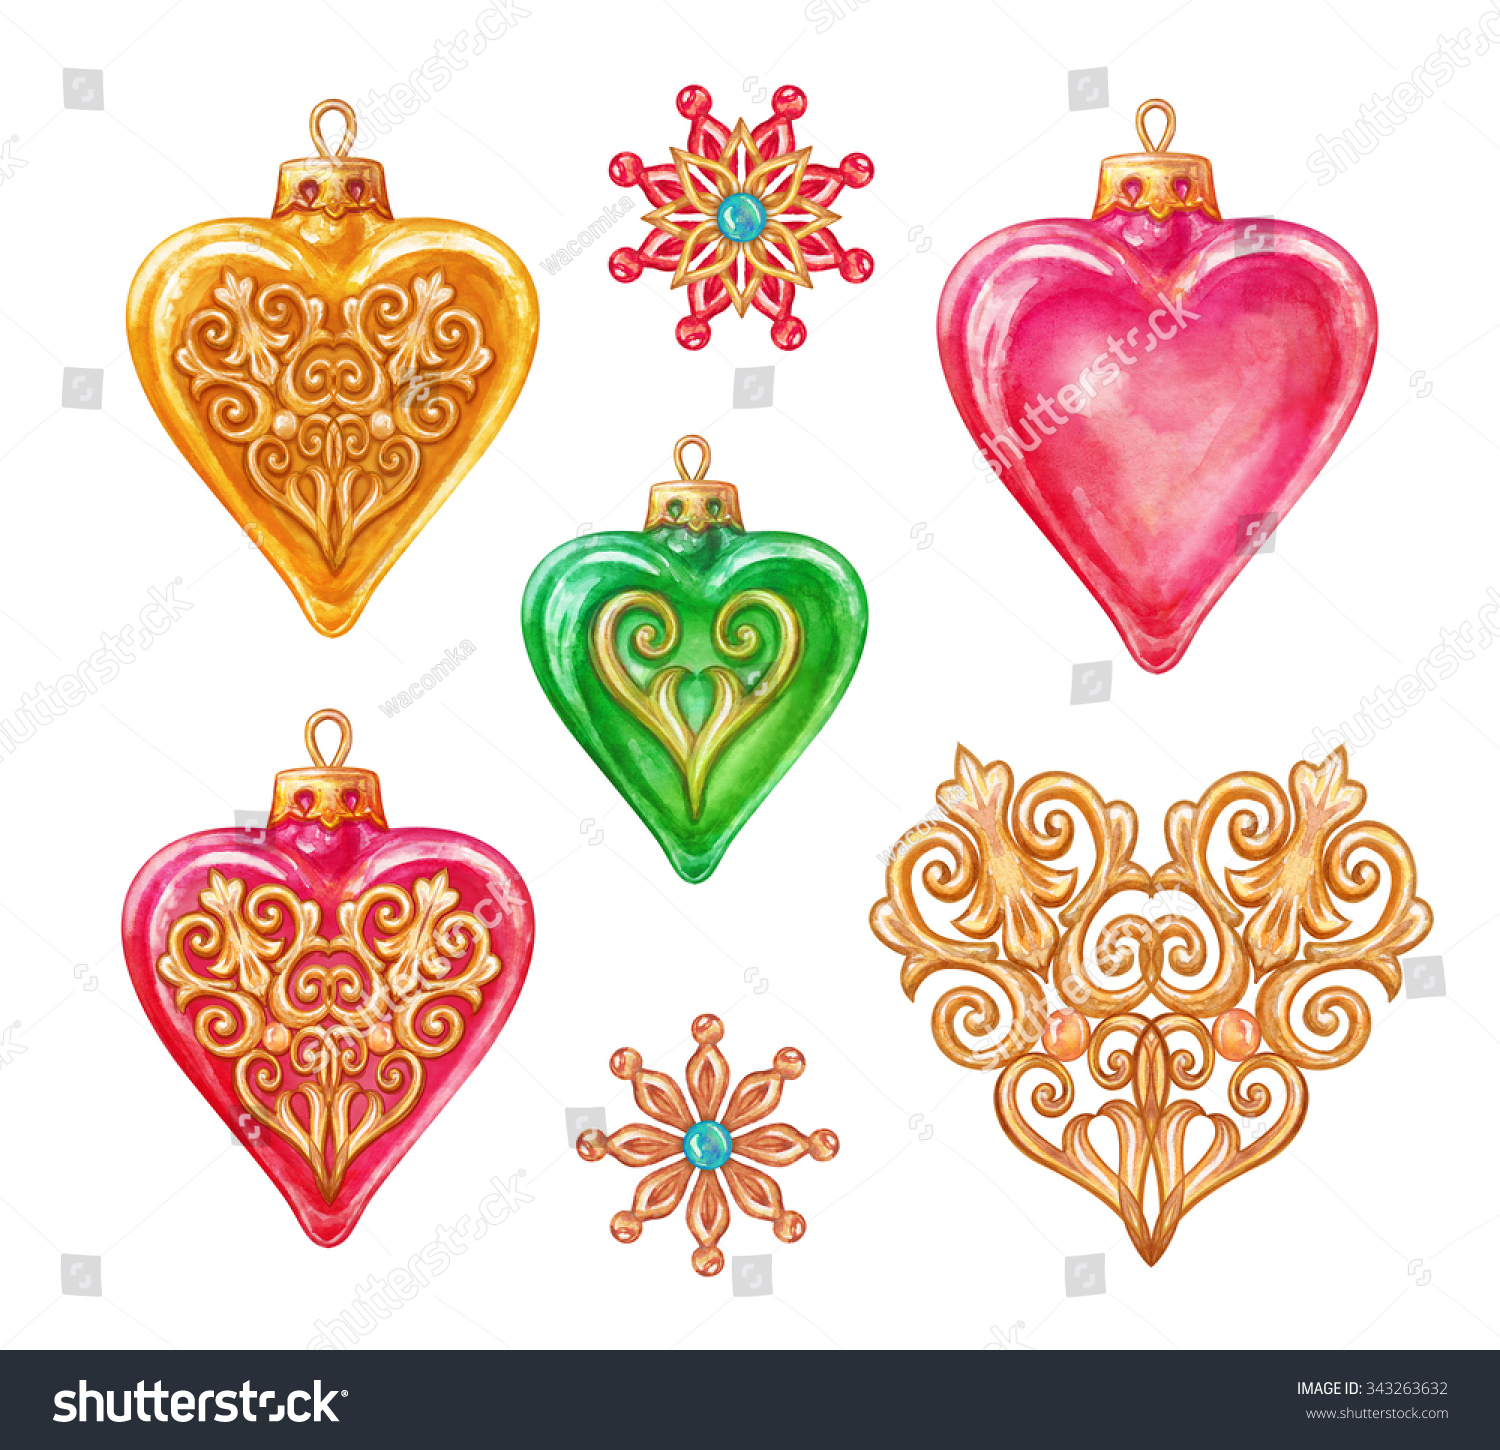 Glass heart christmas ornaments - Save To A Lightbox